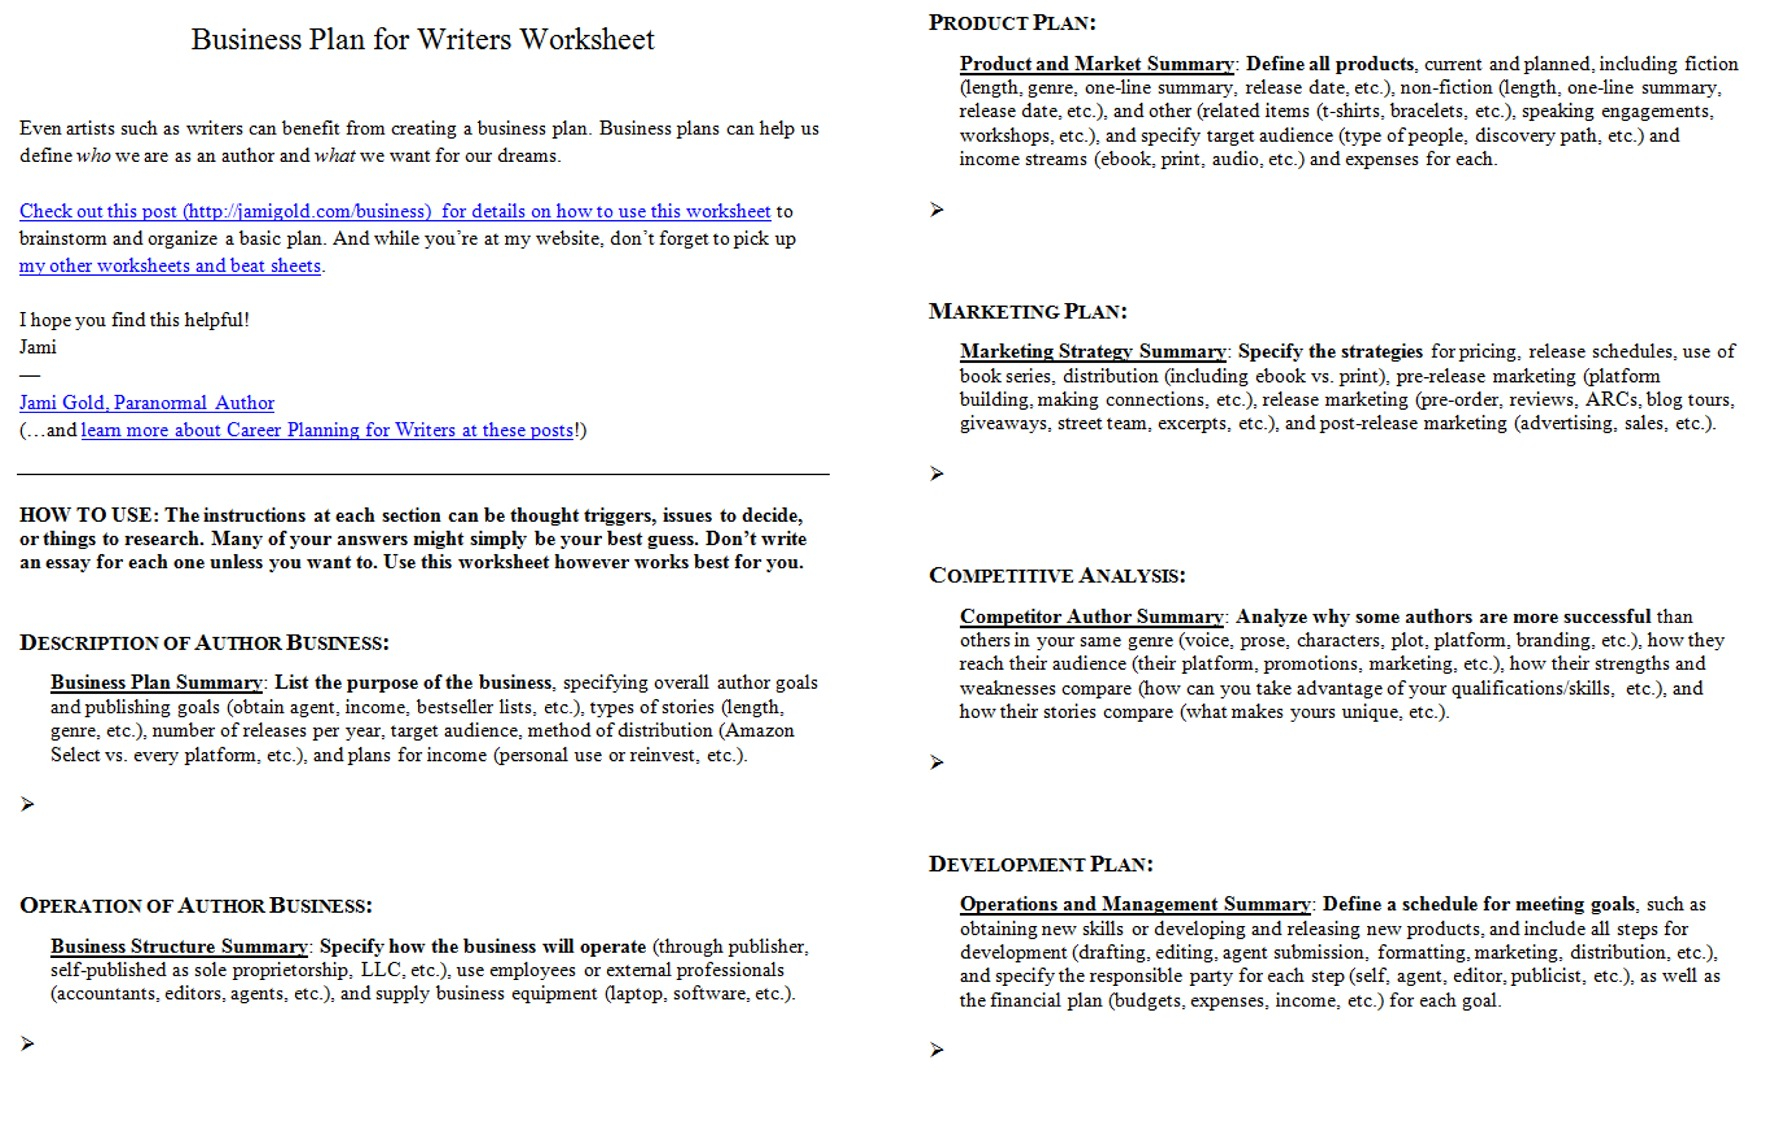 Weirdmailus  Inspiring Worksheets For Writers  Jami Gold Paranormal Author With Excellent Screen Shot Of Both Pages Of The Business Plan For Writers Worksheet With Breathtaking Metric System Conversion Worksheets Also Printable Worksheets Math In Addition Balancing Chemistry Equations Worksheet And Halloween Fraction Worksheets As Well As Math Worksheet Websites Additionally Rectangular Arrays Worksheets From Jamigoldcom With Weirdmailus  Excellent Worksheets For Writers  Jami Gold Paranormal Author With Breathtaking Screen Shot Of Both Pages Of The Business Plan For Writers Worksheet And Inspiring Metric System Conversion Worksheets Also Printable Worksheets Math In Addition Balancing Chemistry Equations Worksheet From Jamigoldcom